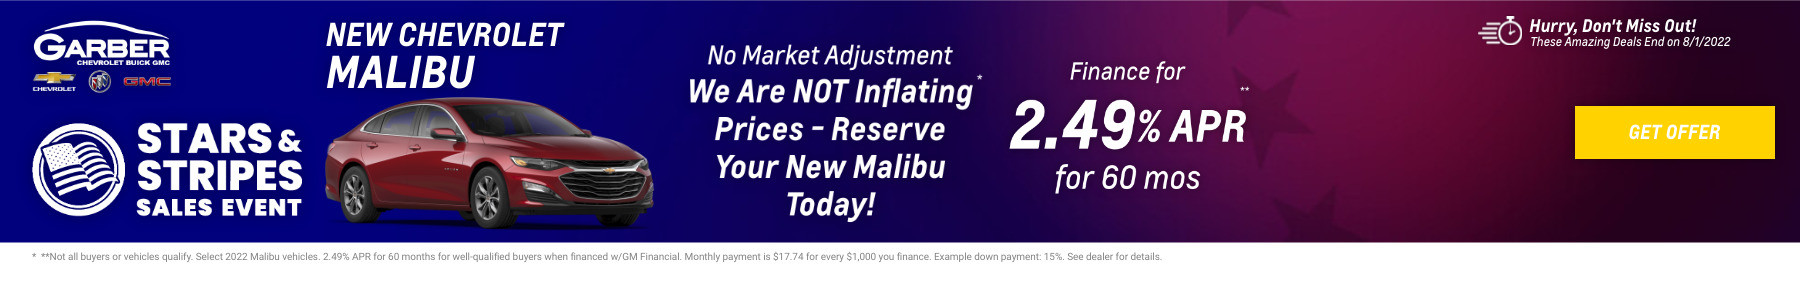 New Chevrolet Malibu Current Deals and Offers in Orange Park, FL